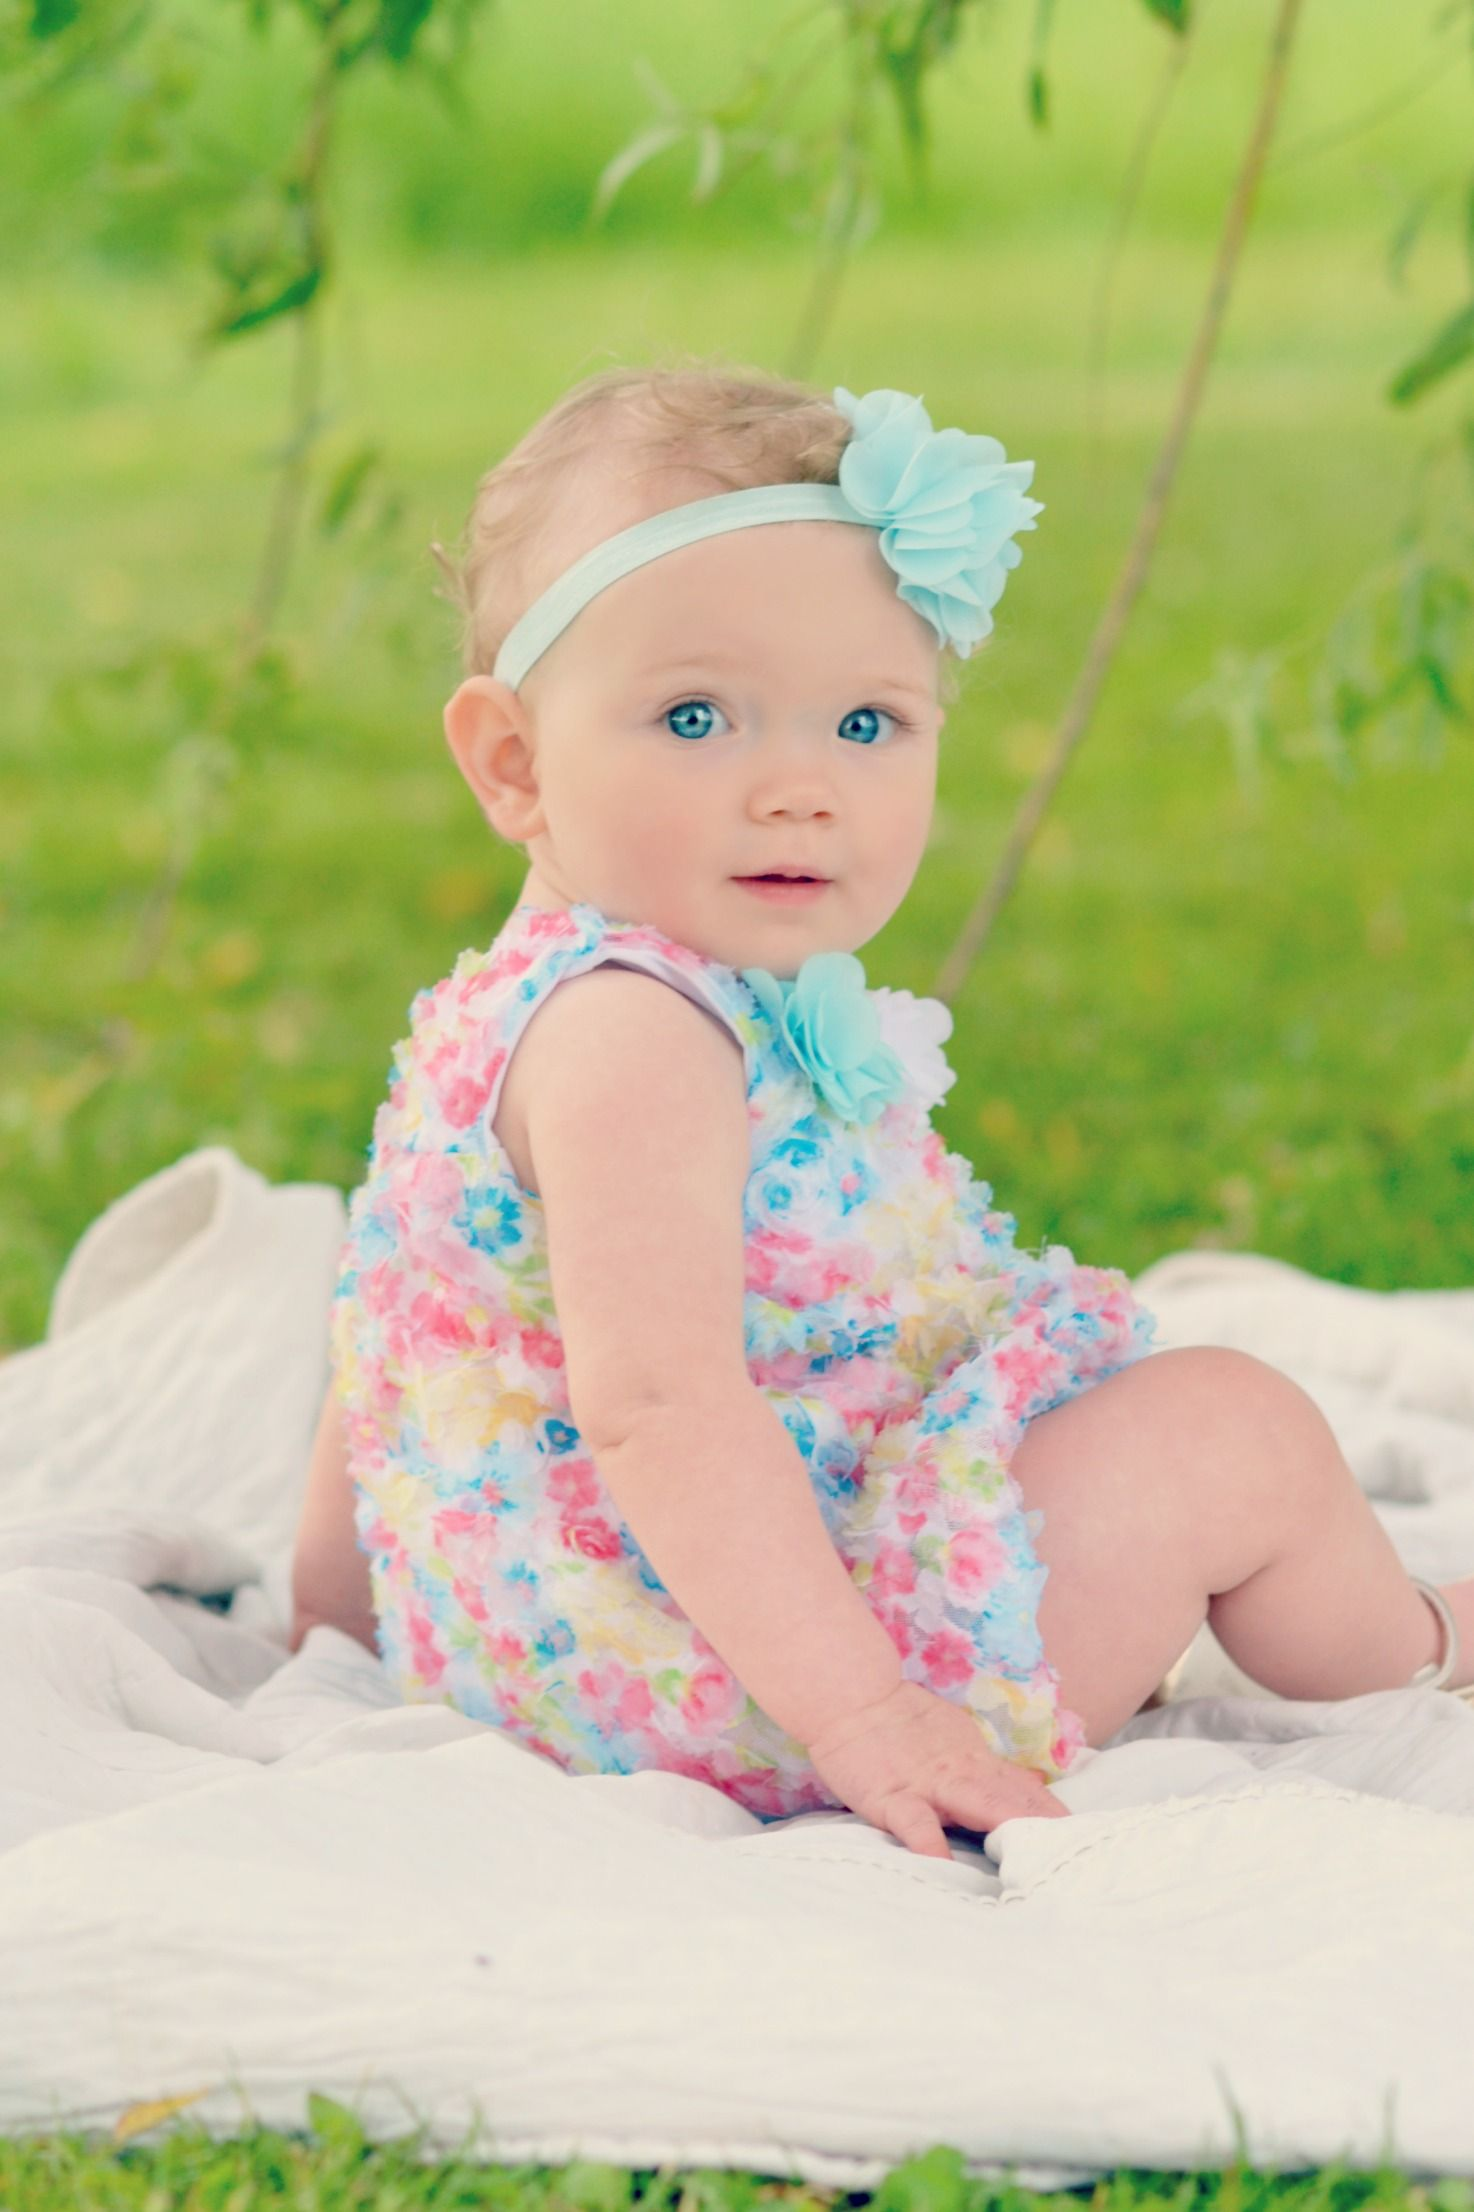 One year old girl picture | Baby girl photography